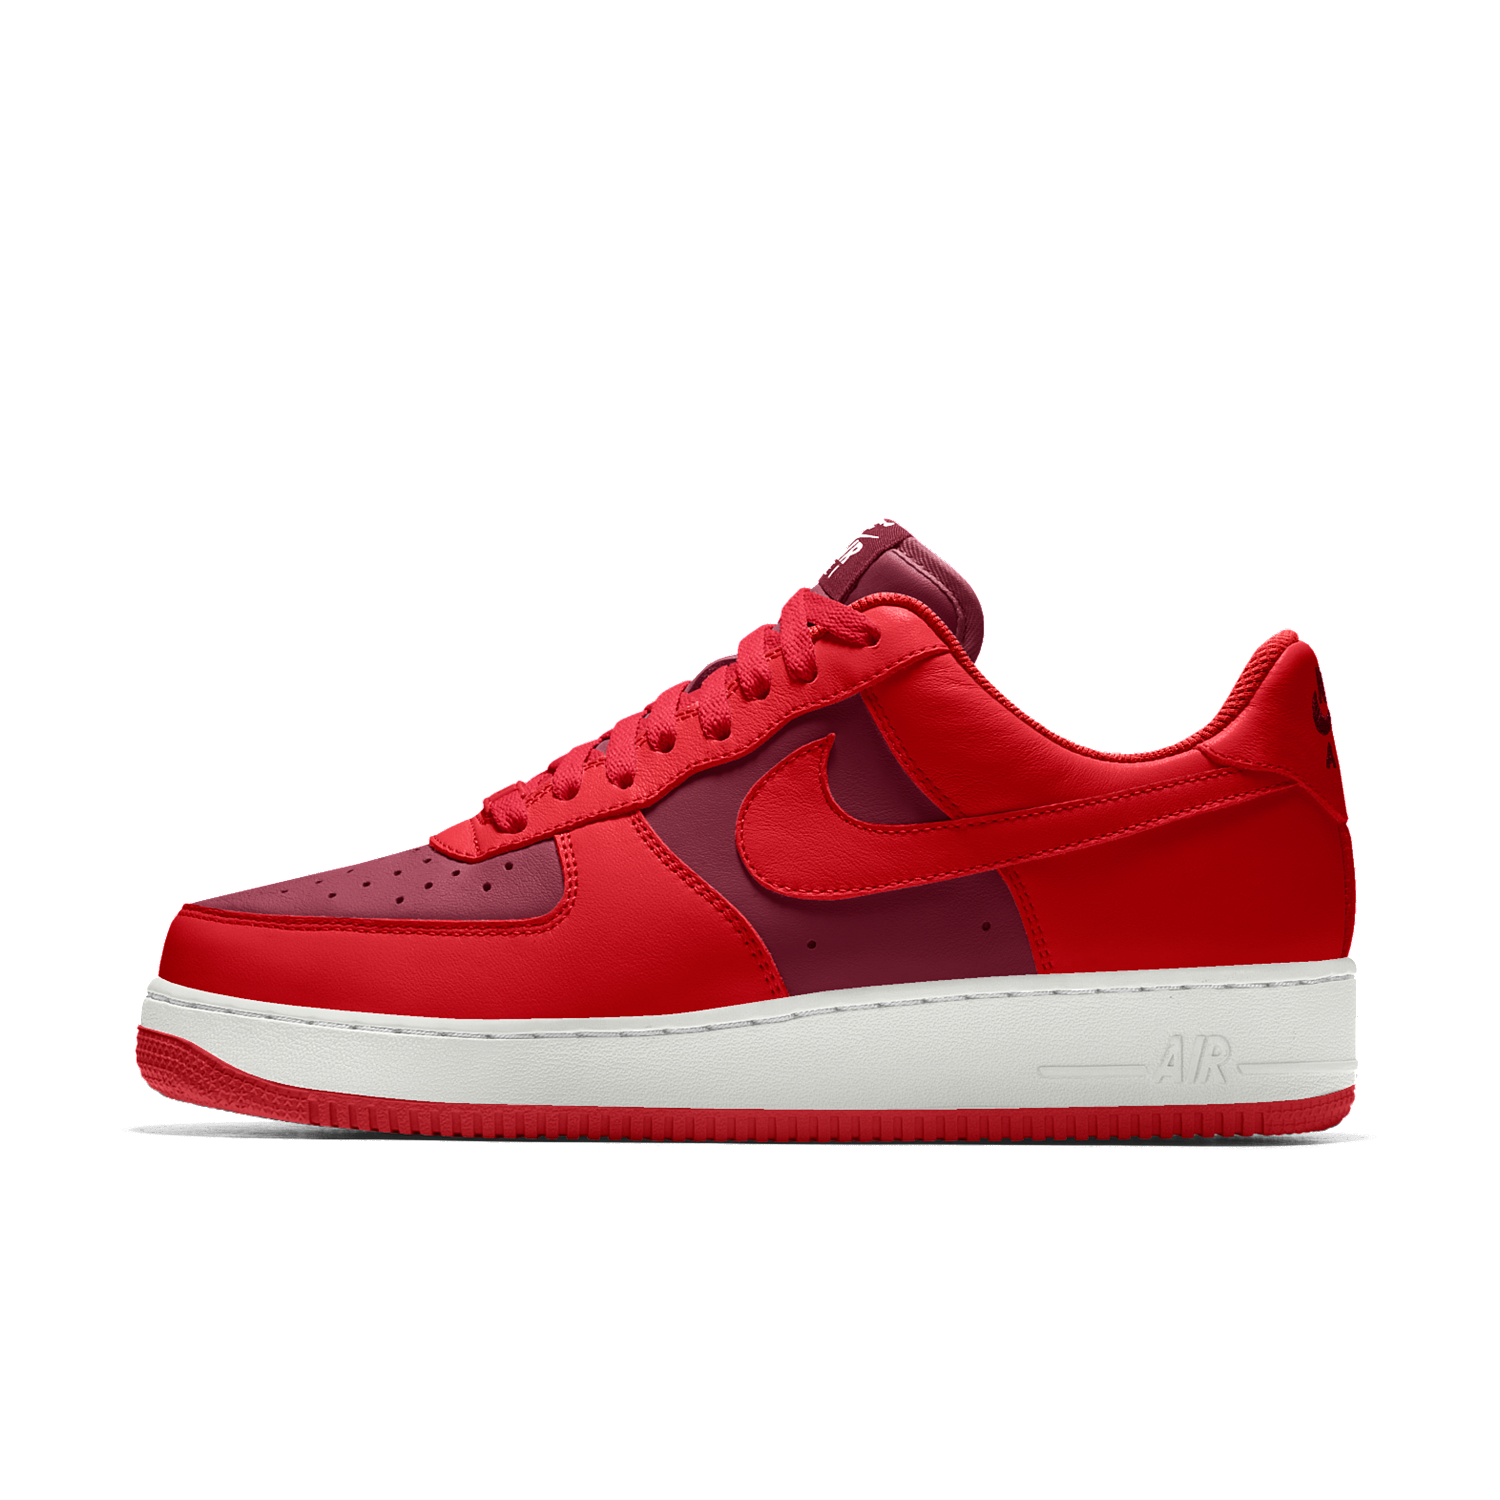 Nike Air Force 1 Low Essentials iD